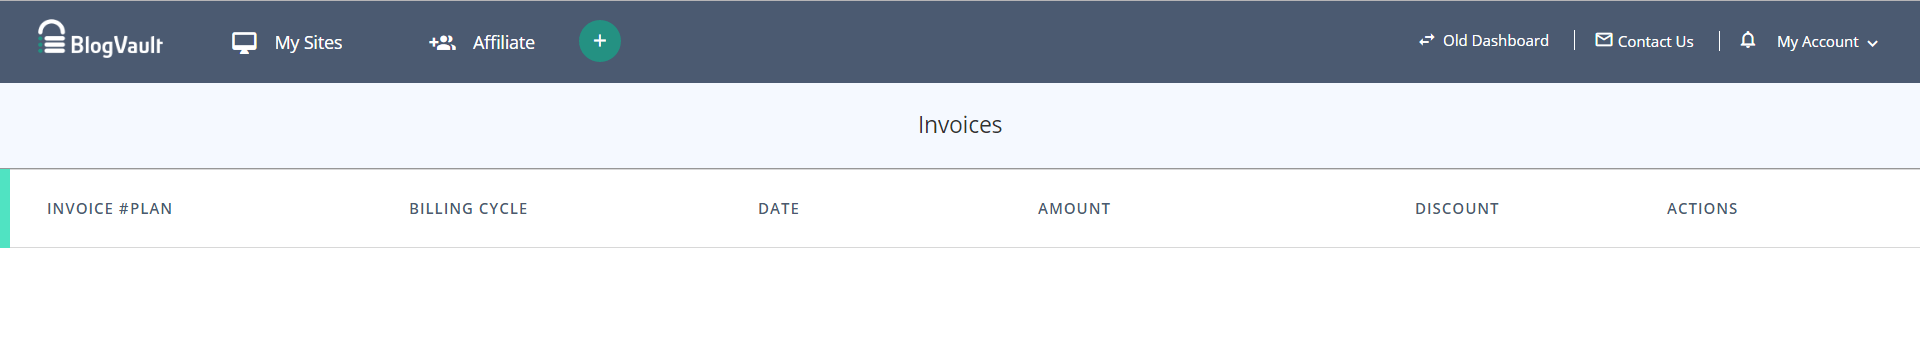 Account Settings_Billing and Invoices_View Invoices_